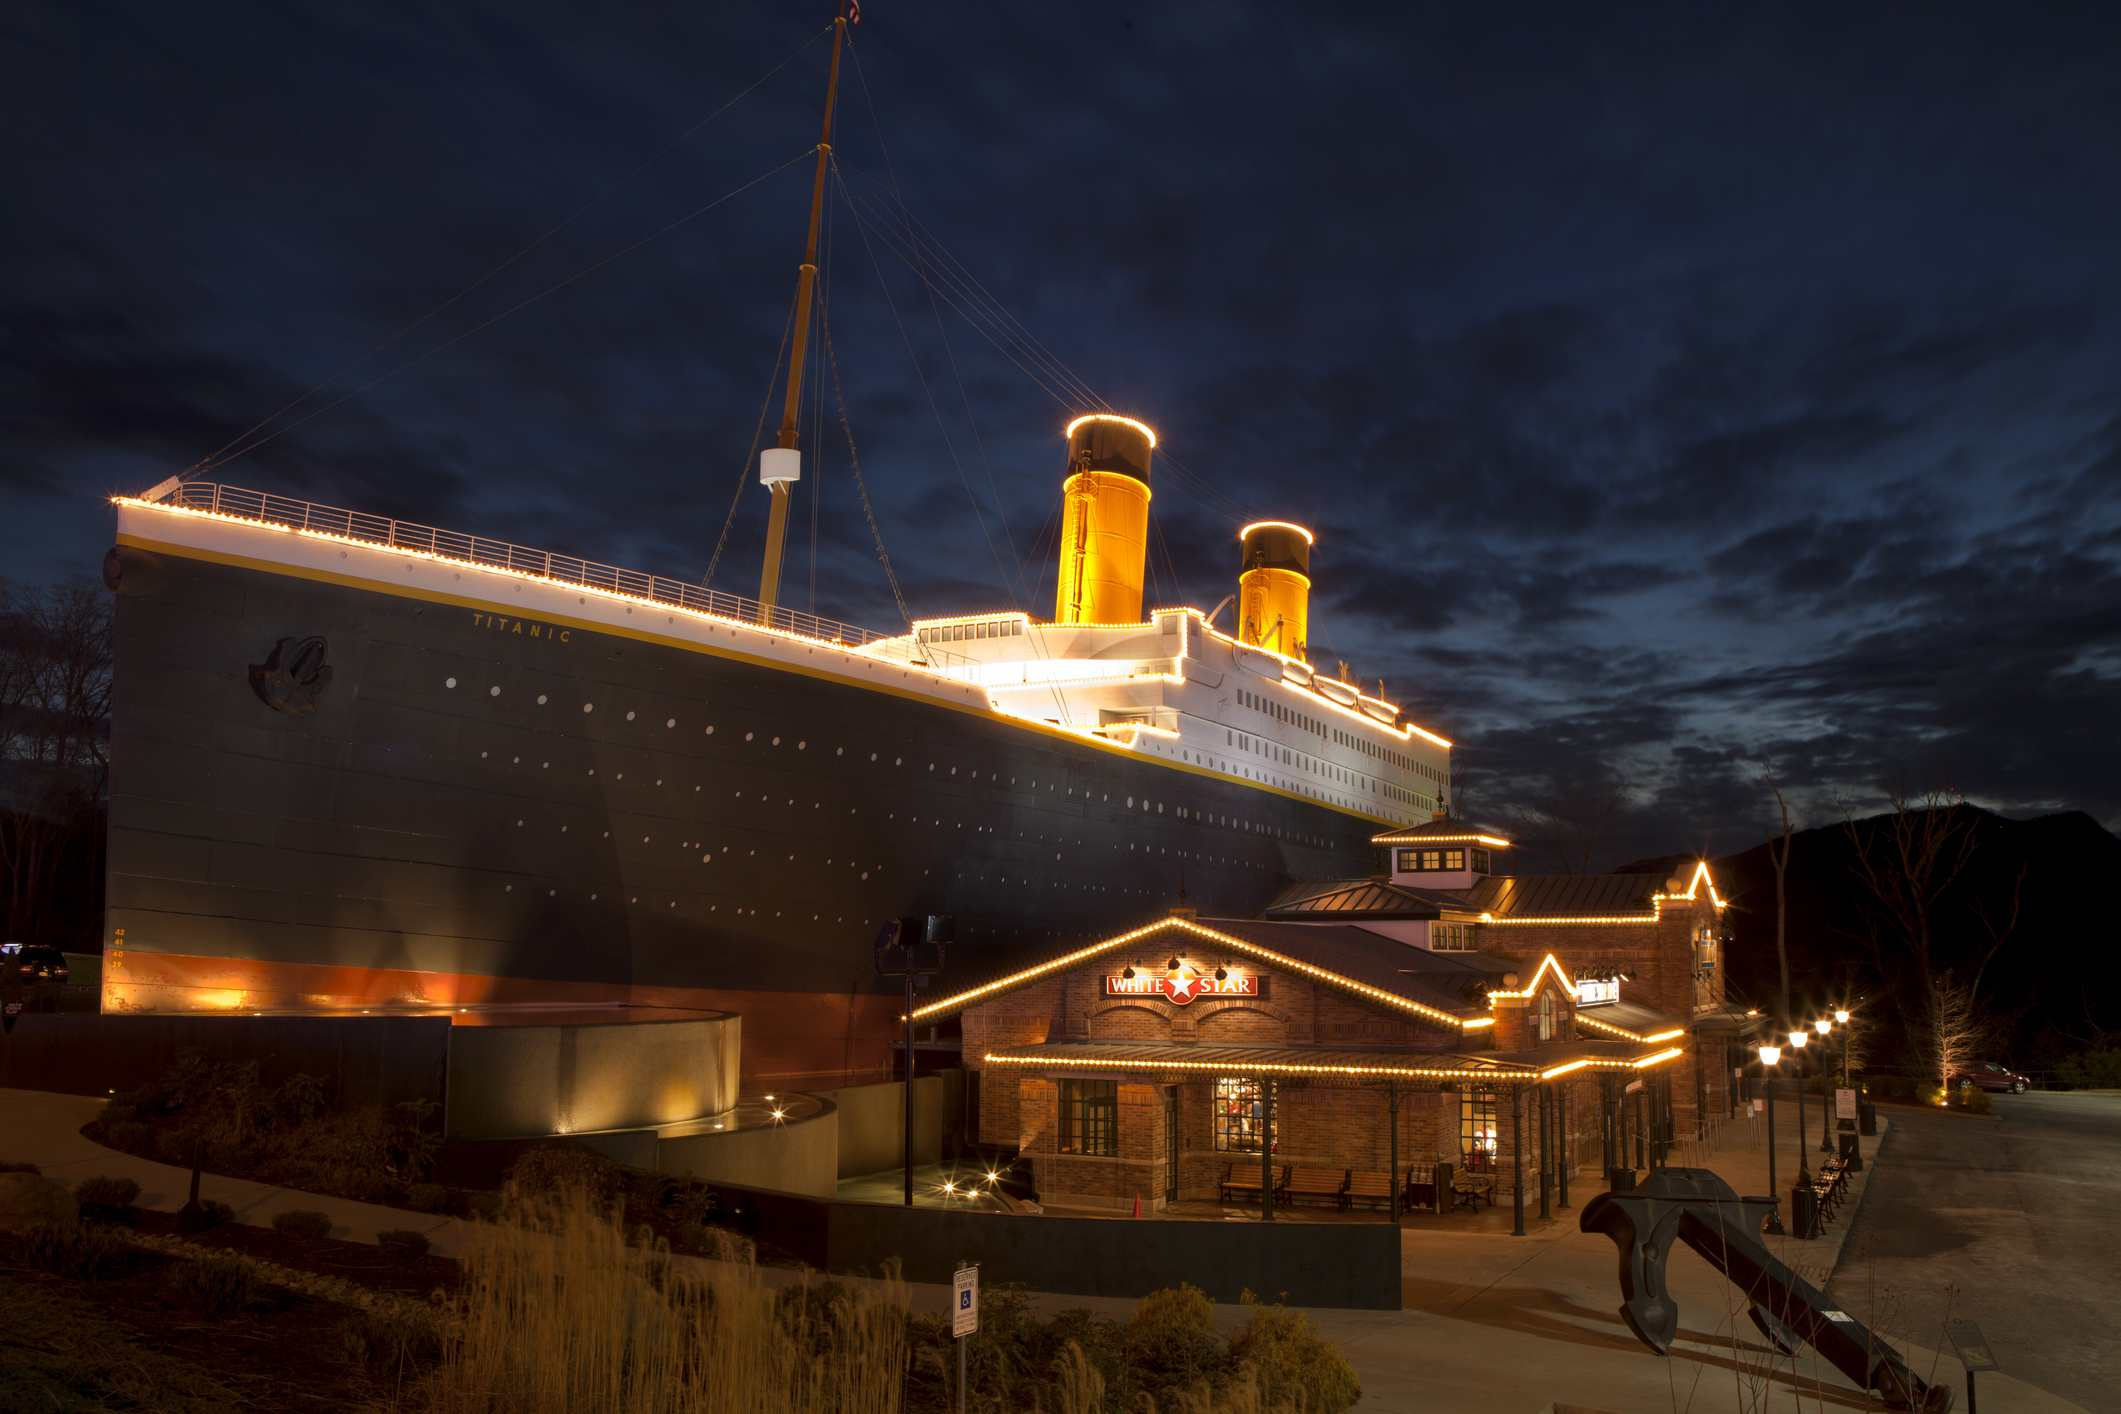 . The facade of the building resembles the world's most famous luxury liner, RMS Titanic.